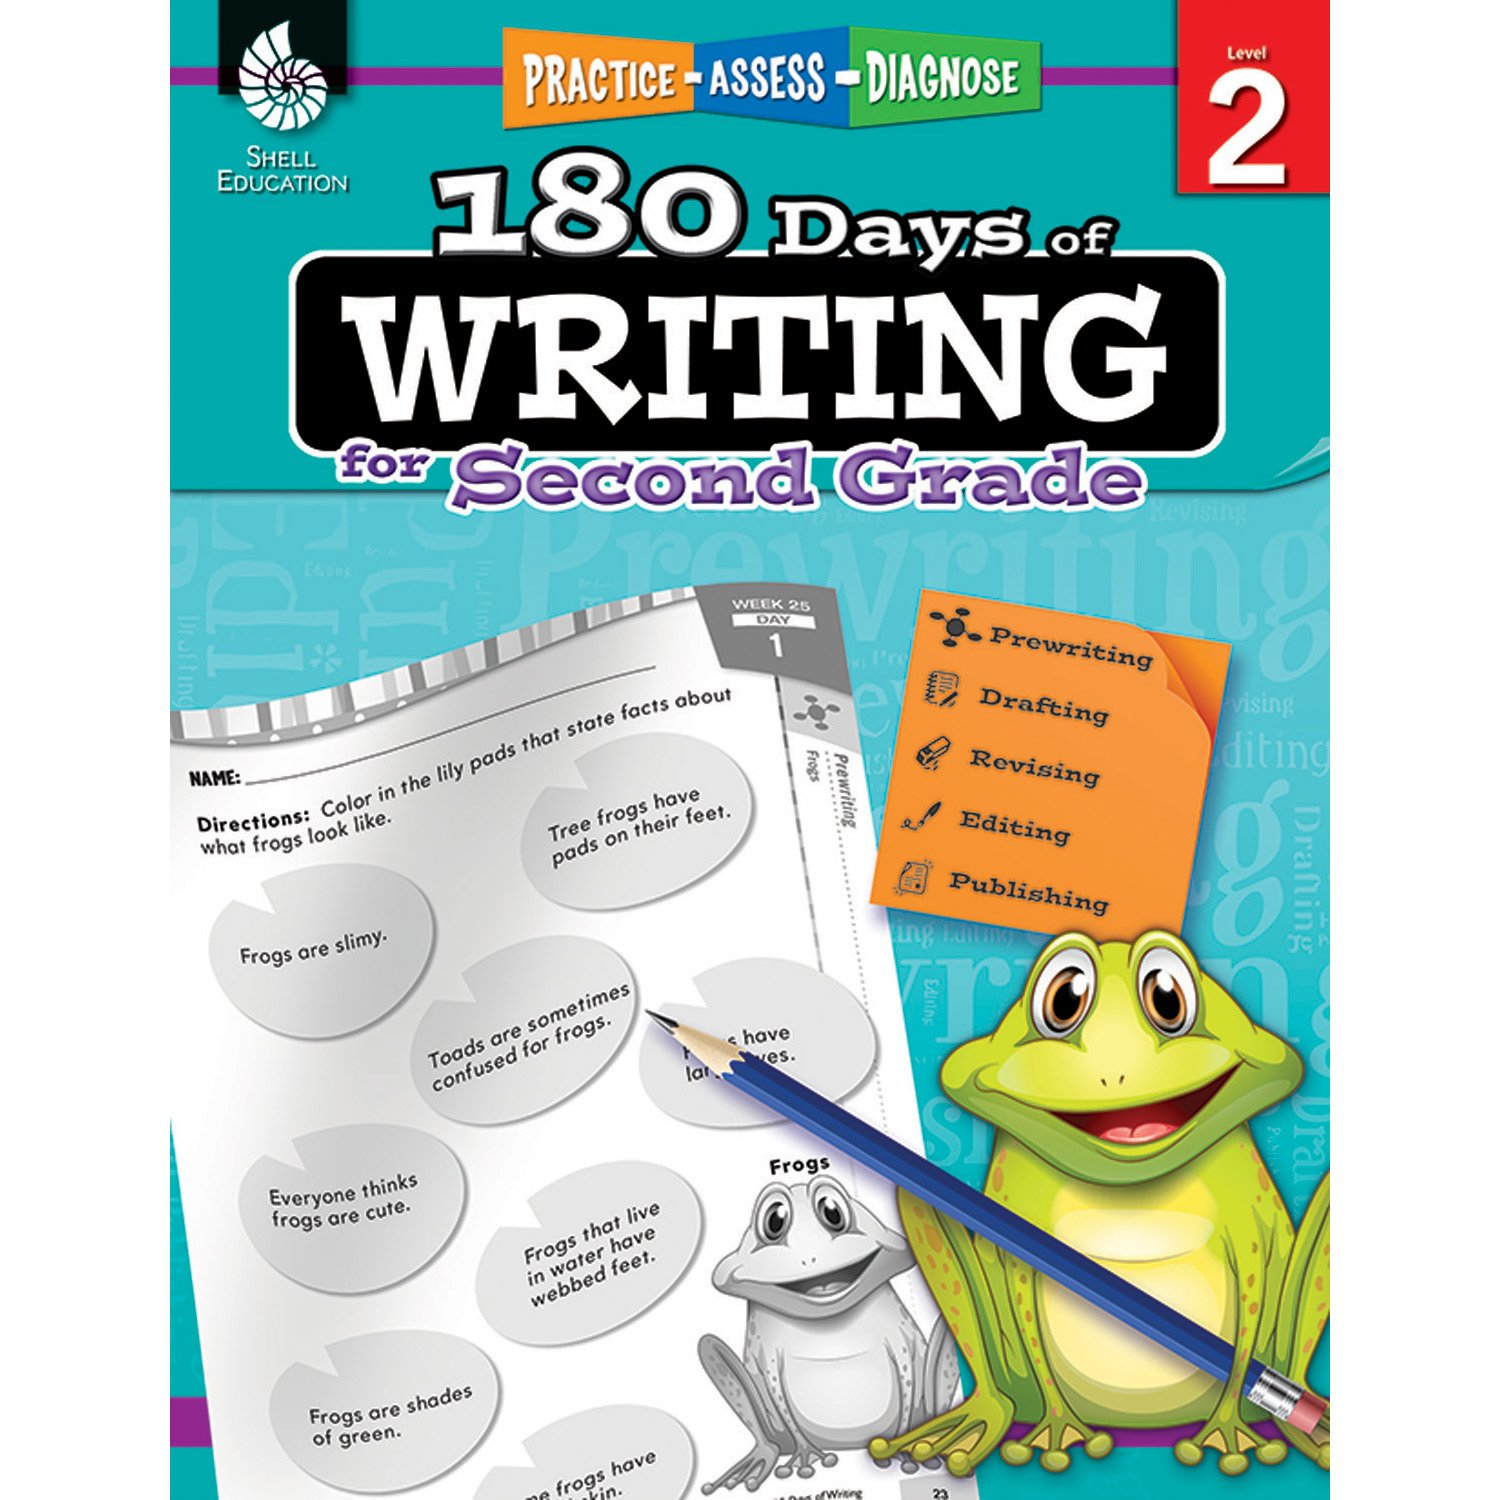 Amazon.com: 180 Days of Writing for Second Grade - An Easy-to-Use ...